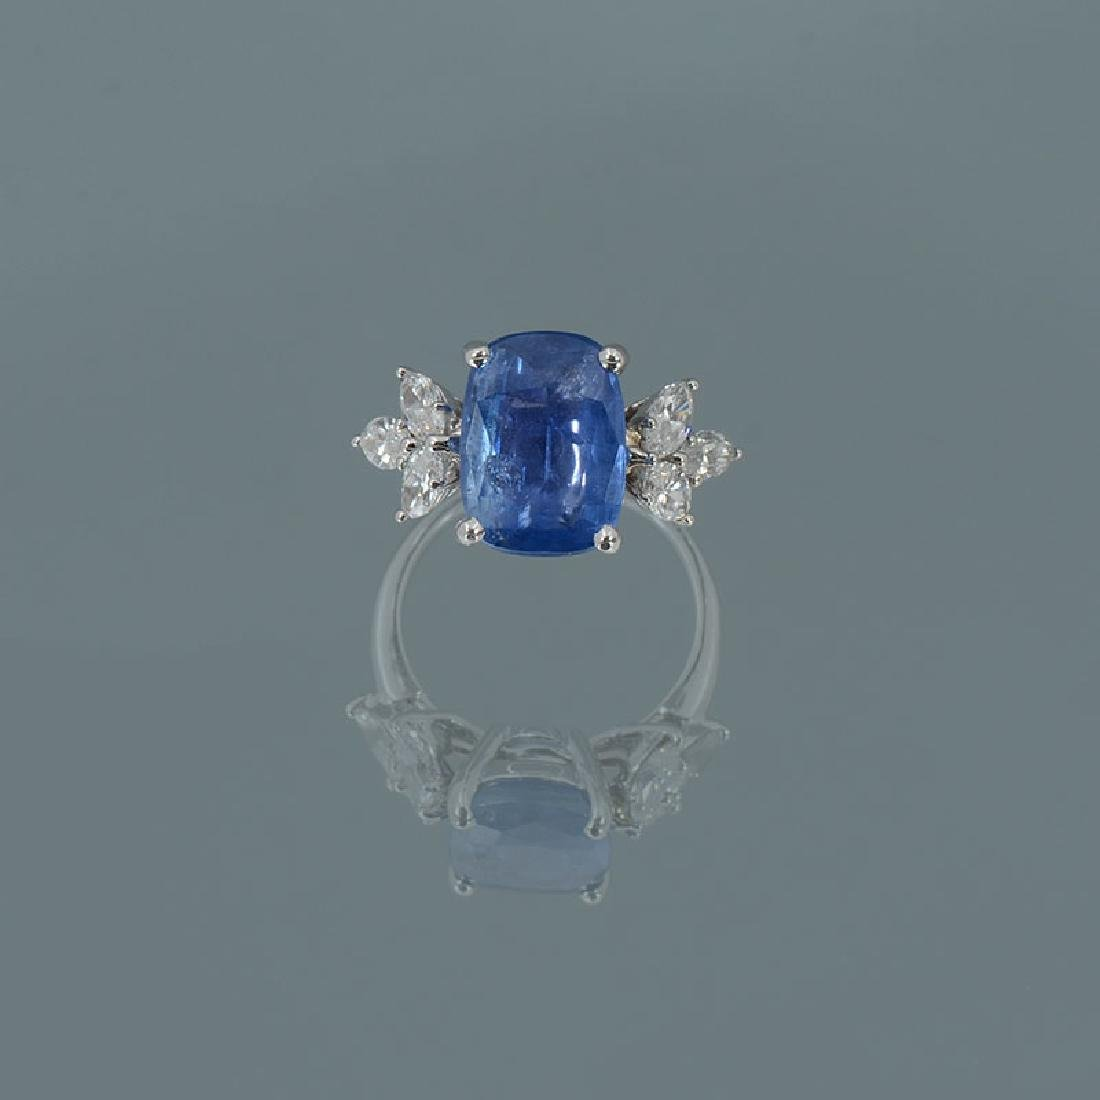 5.06CT BURMESE NO HEAT SAPPHIRE PLATINUM RING WITH